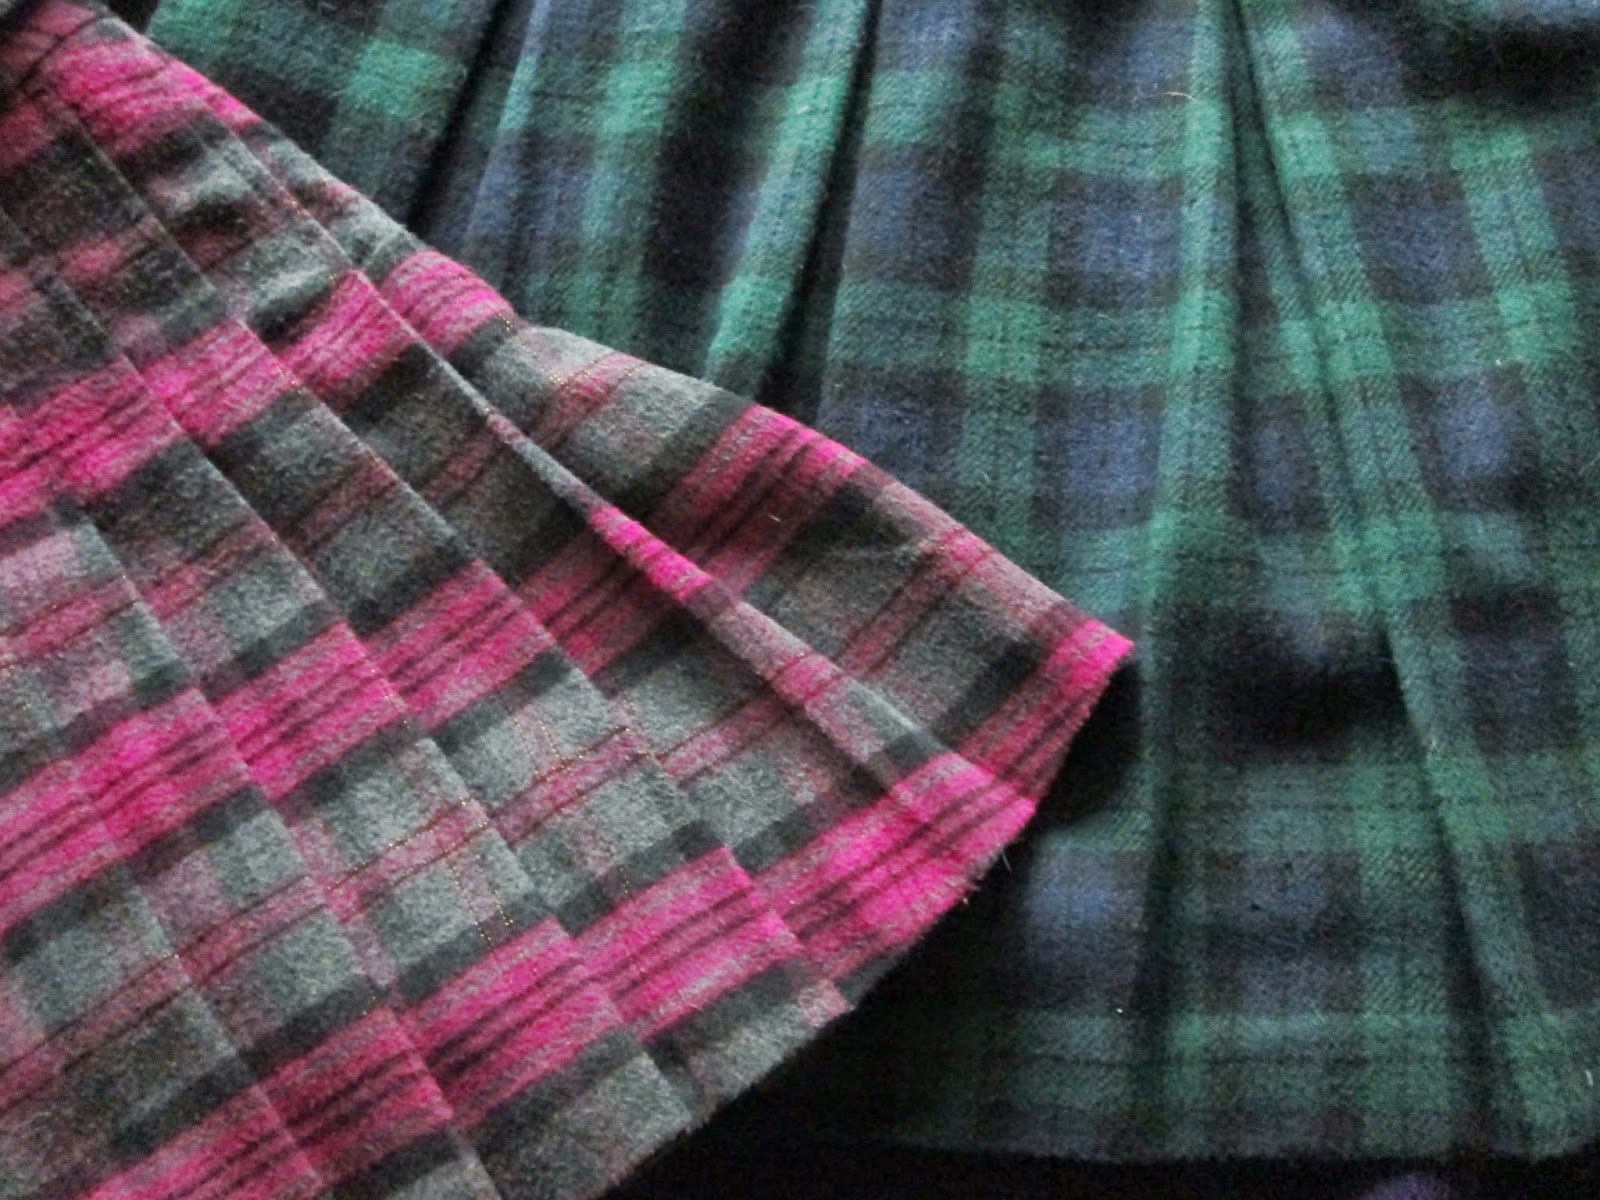 Pink kilt style mini skirt and green and blue tartan mini skirt